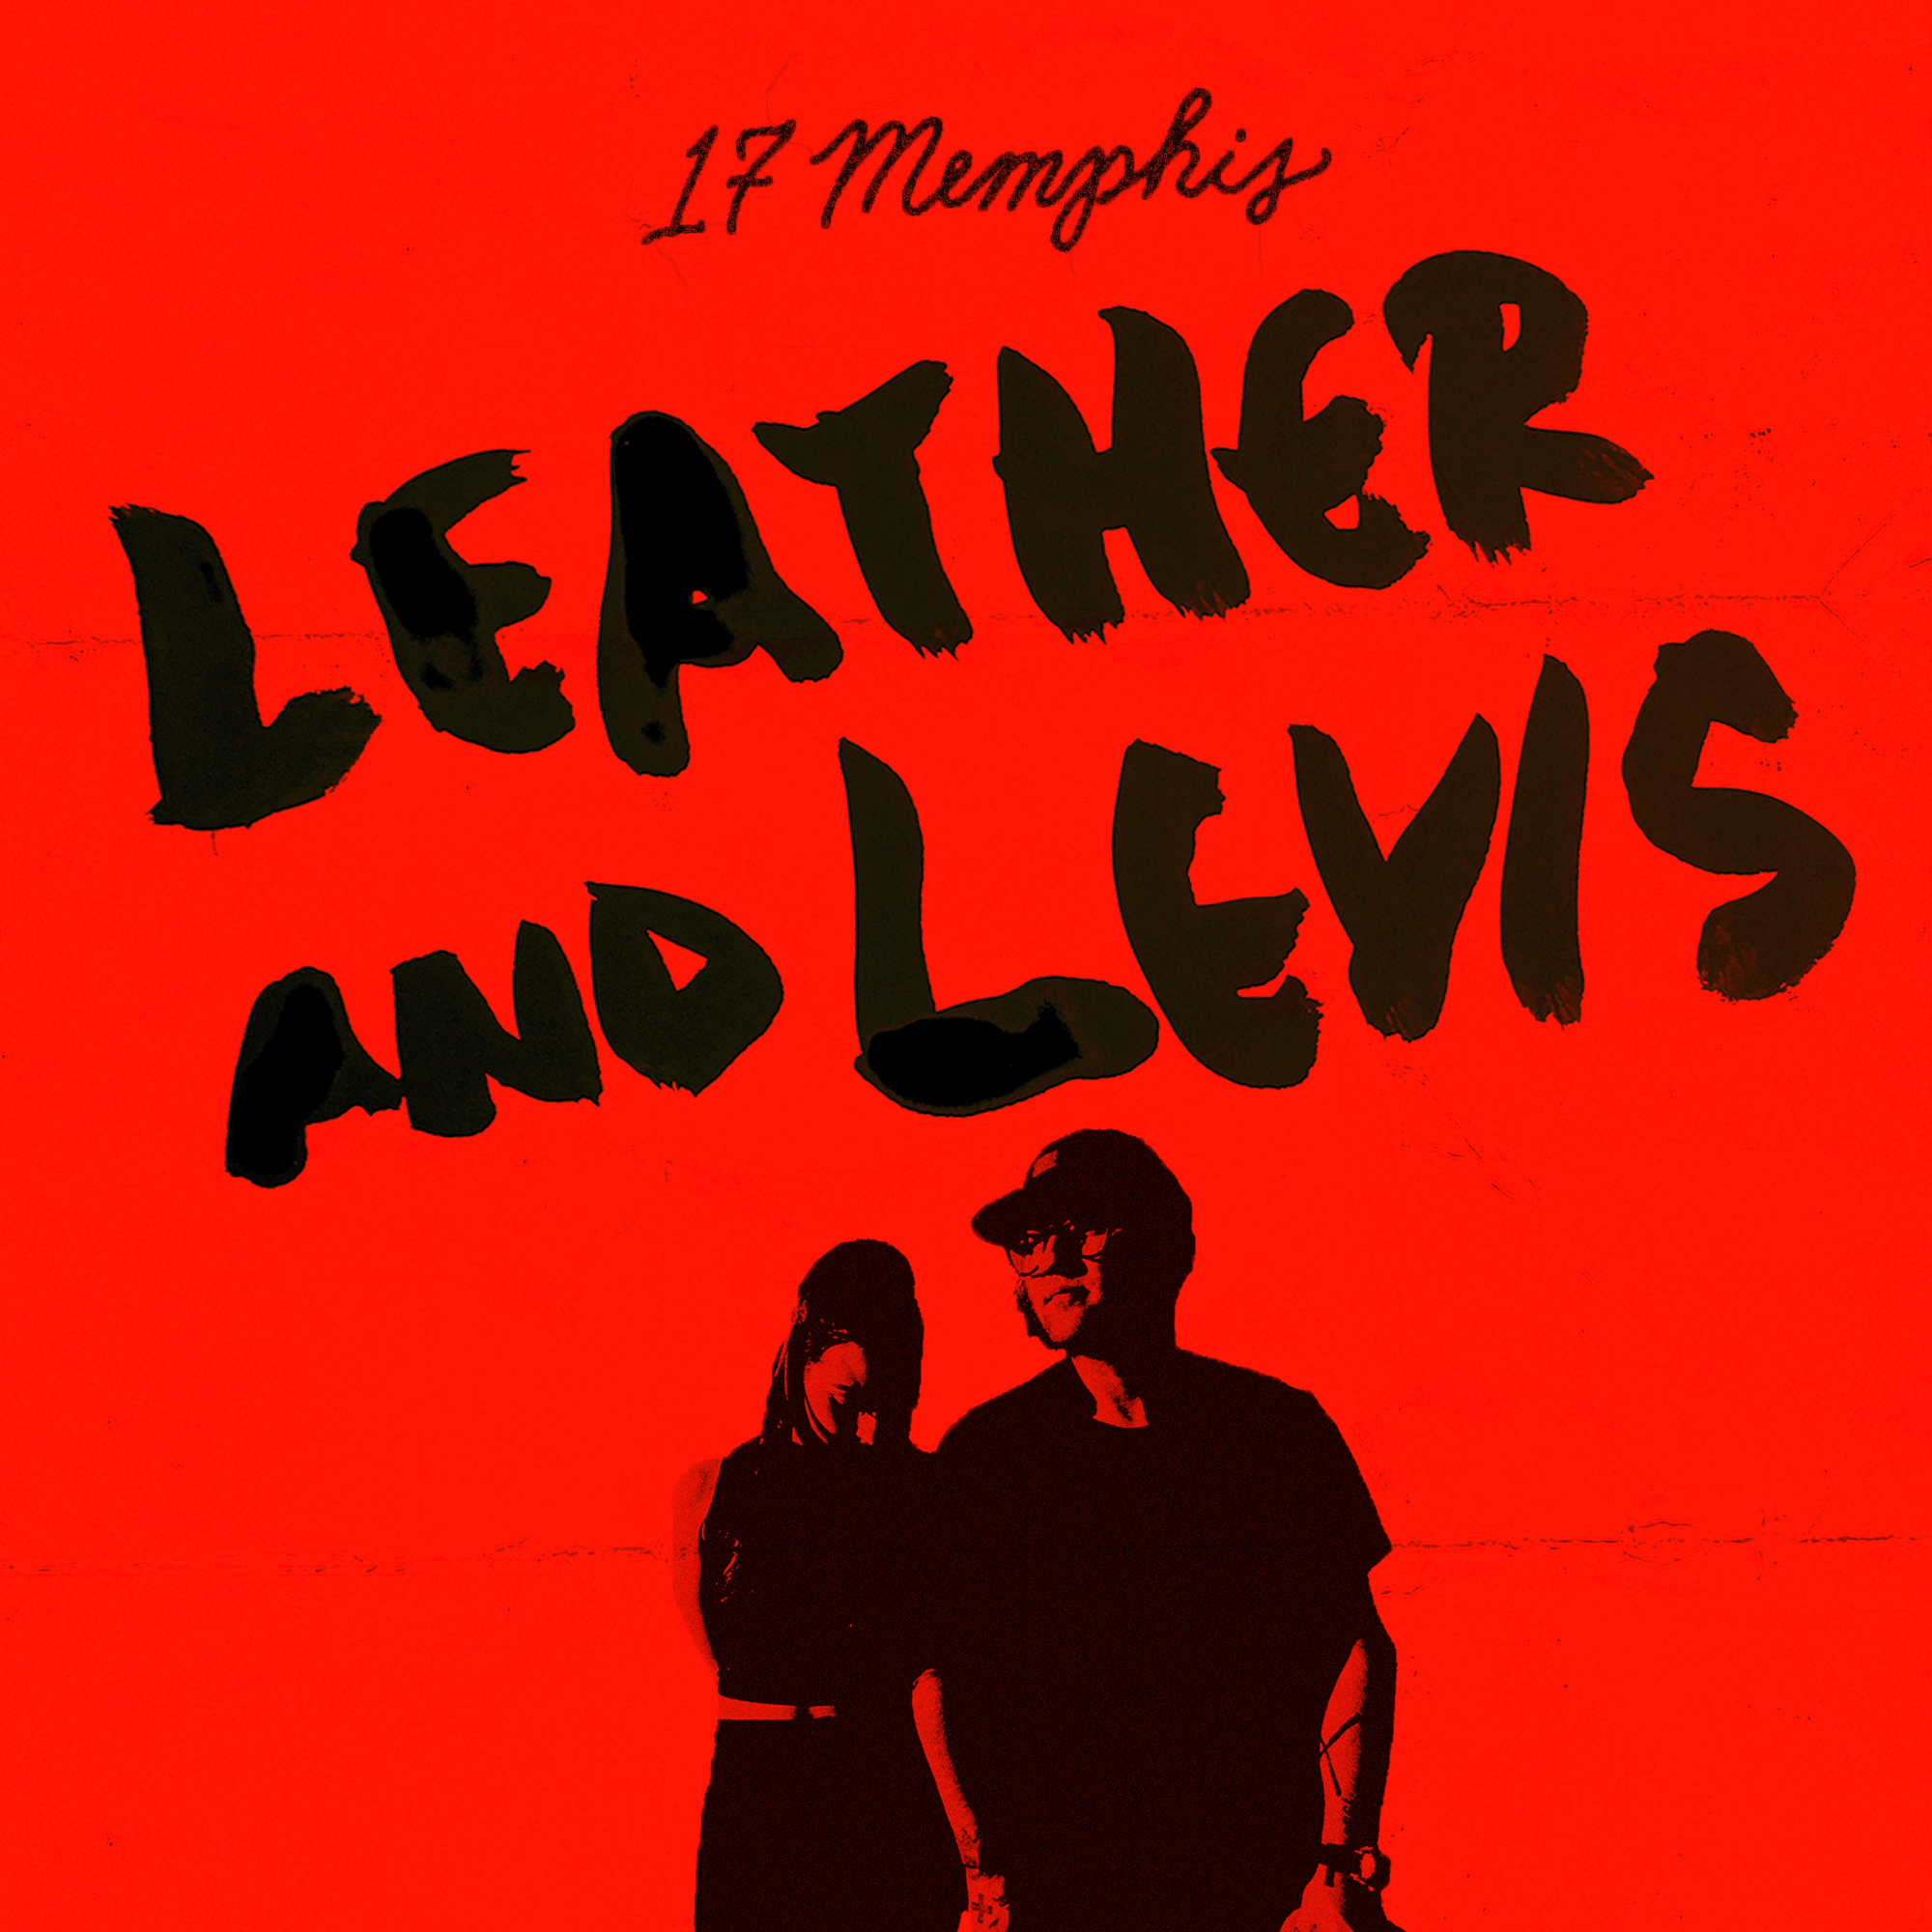 leather and levis.jpg